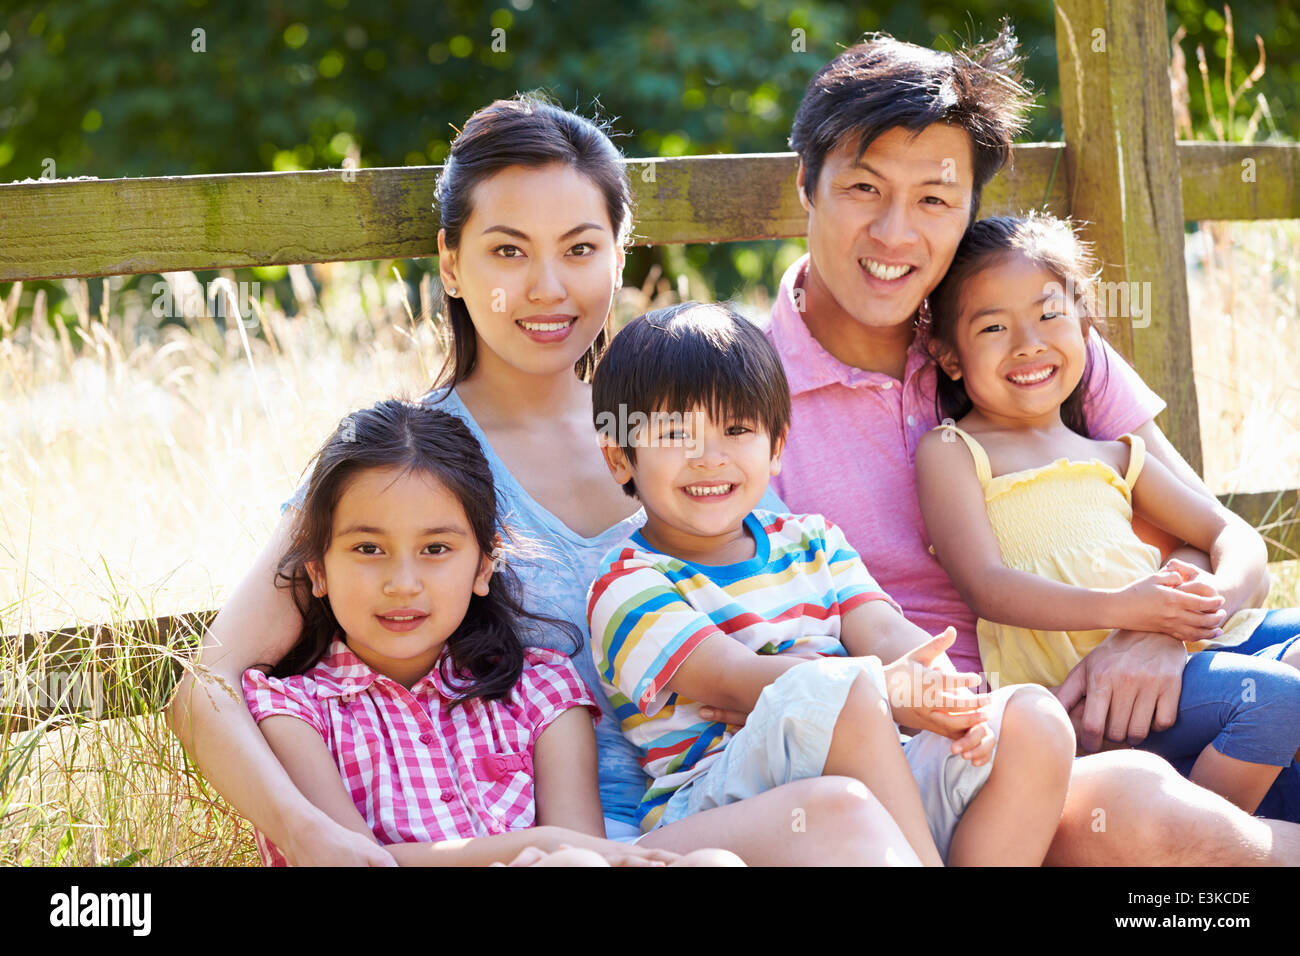 Asian Family Relaxing By Gate On Walk In Countryside - Stock Image